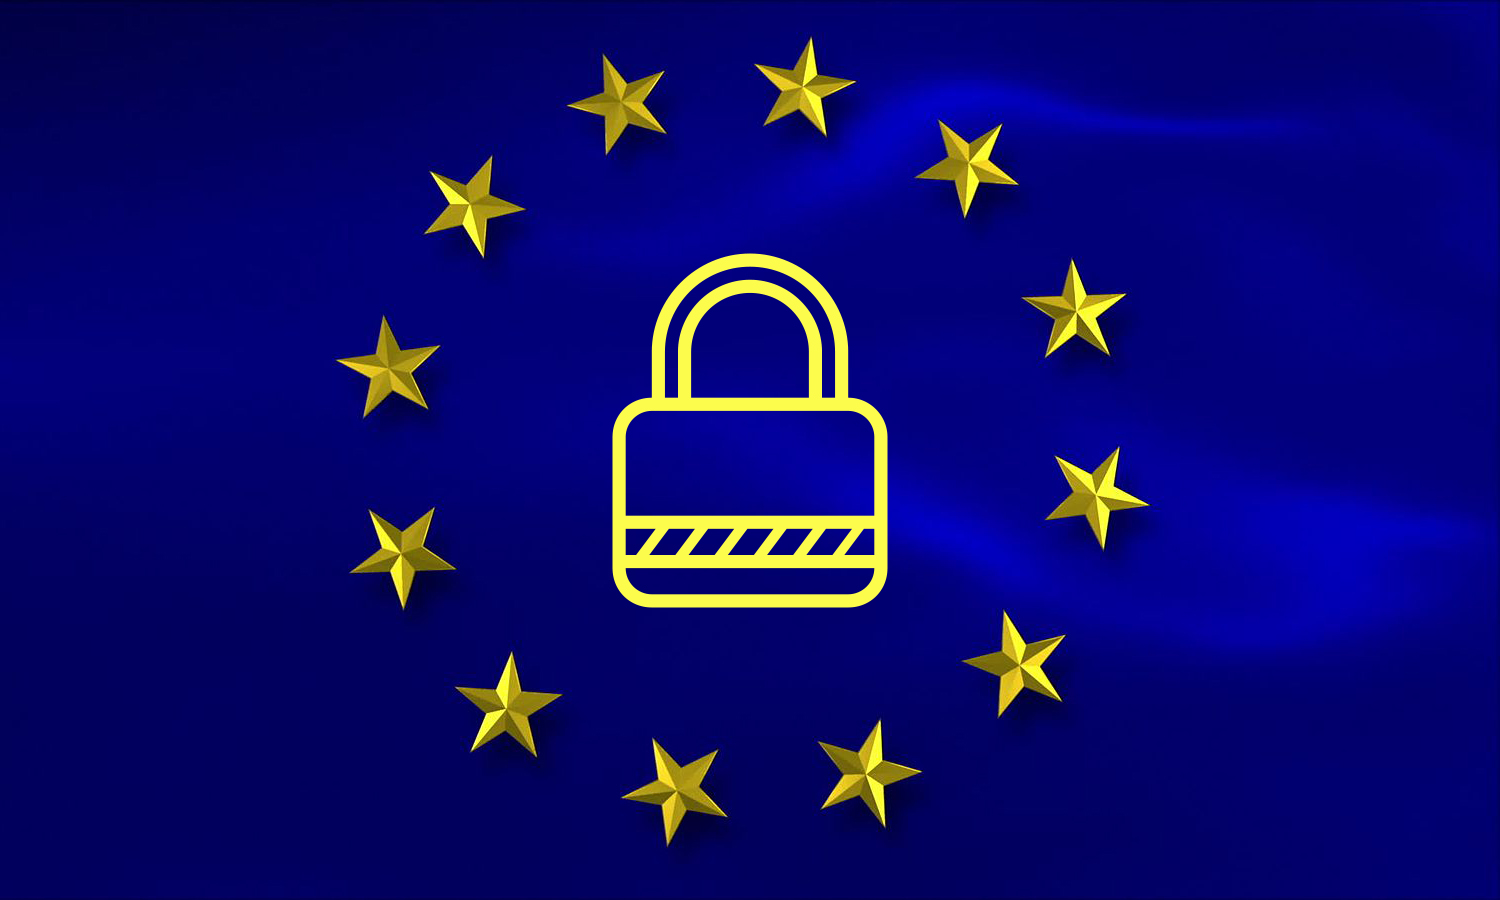 GDPR: Why We're Thinking About Crisis Management & Business Continuity